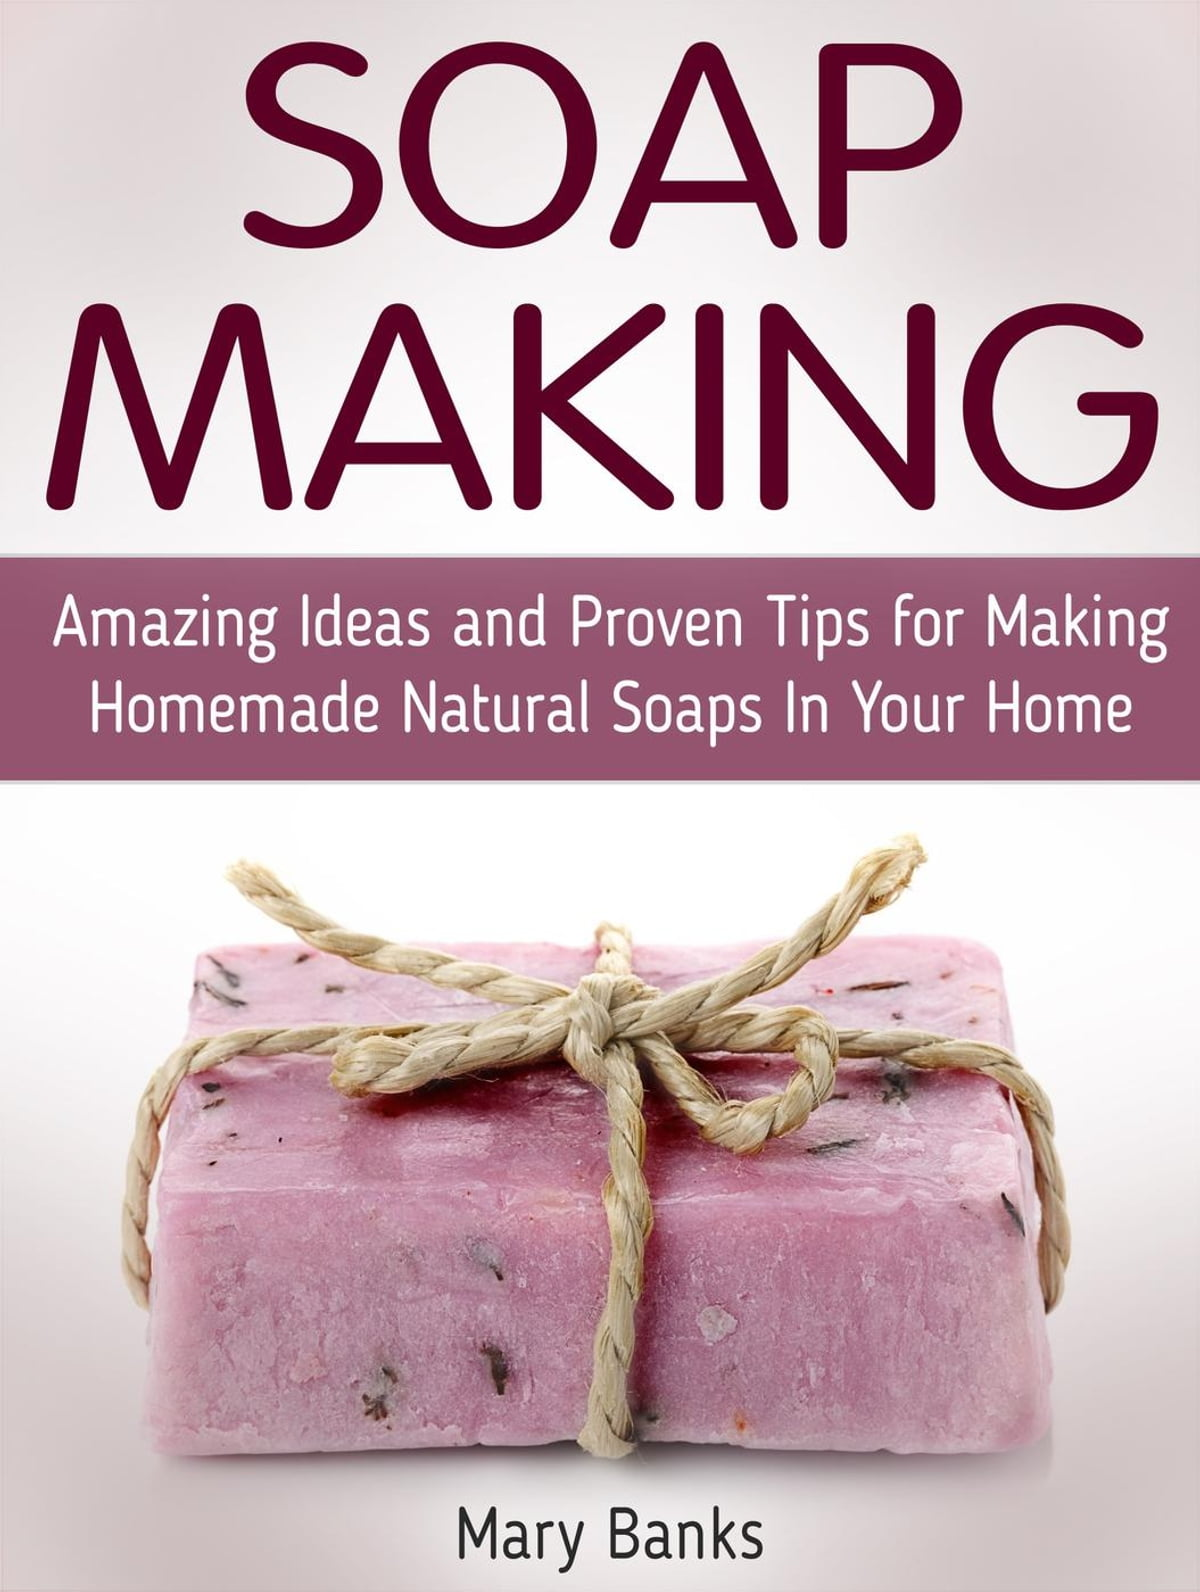 Soap Making: Amazing Ideas and Proven